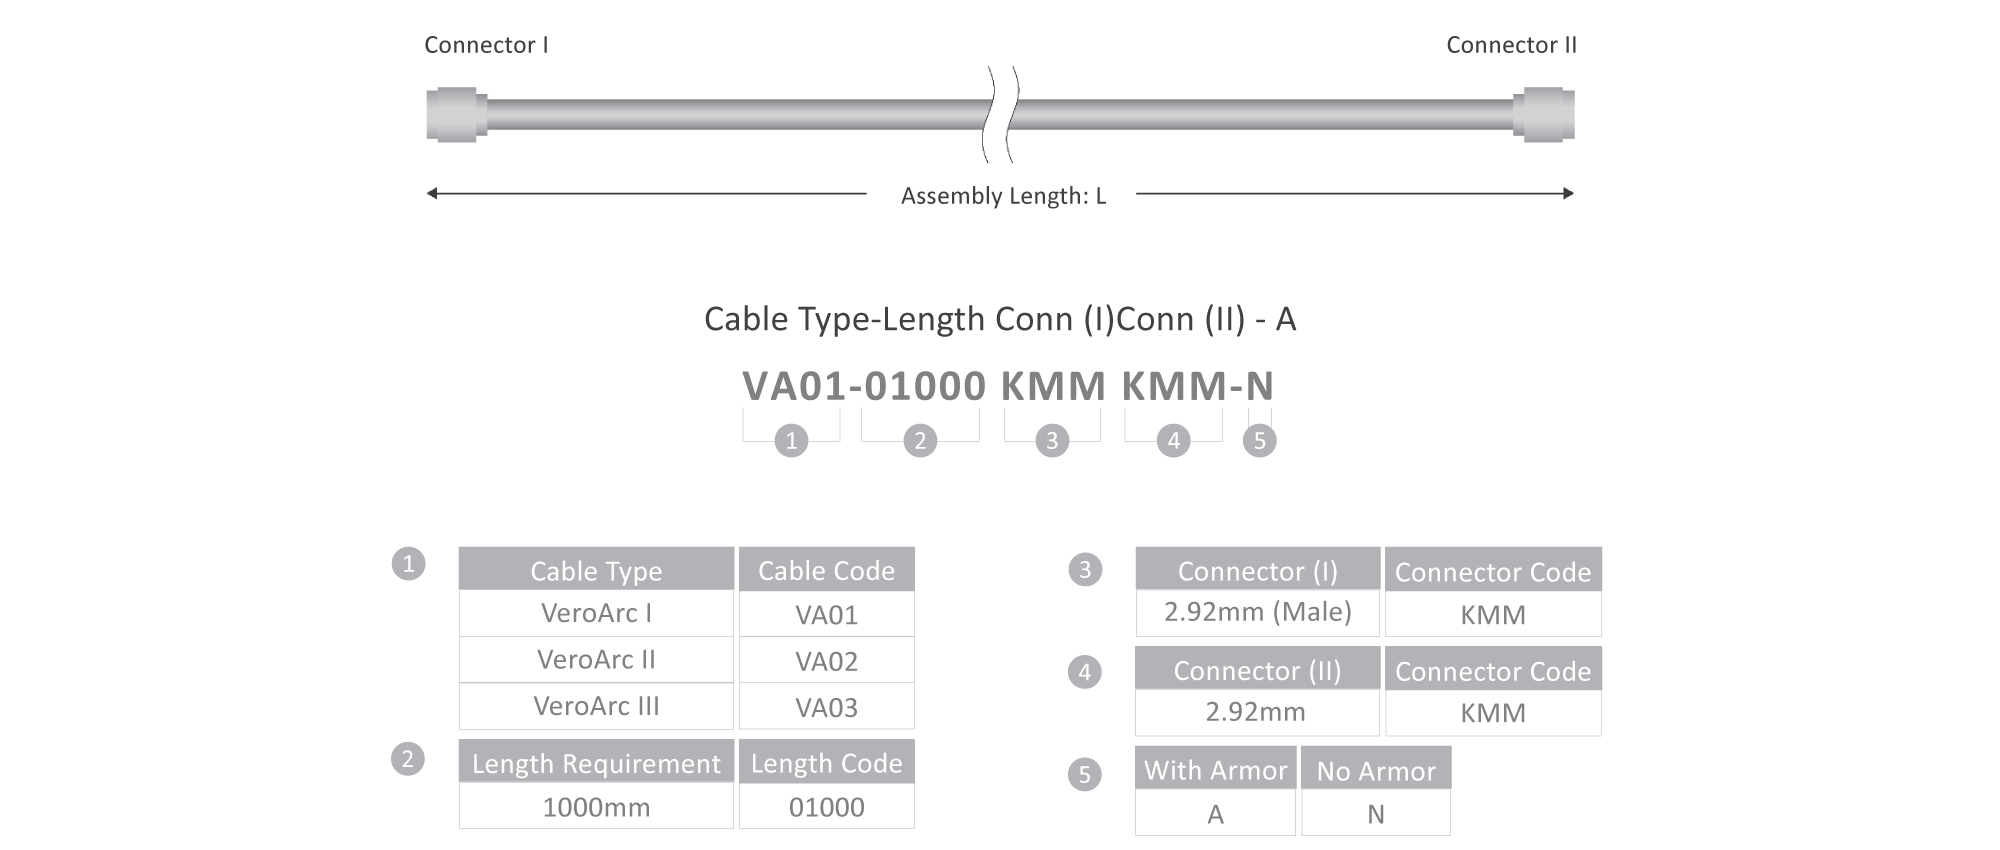 Continuum Technologies - Vero RF Cable Series - veroARC - Part Number Construction